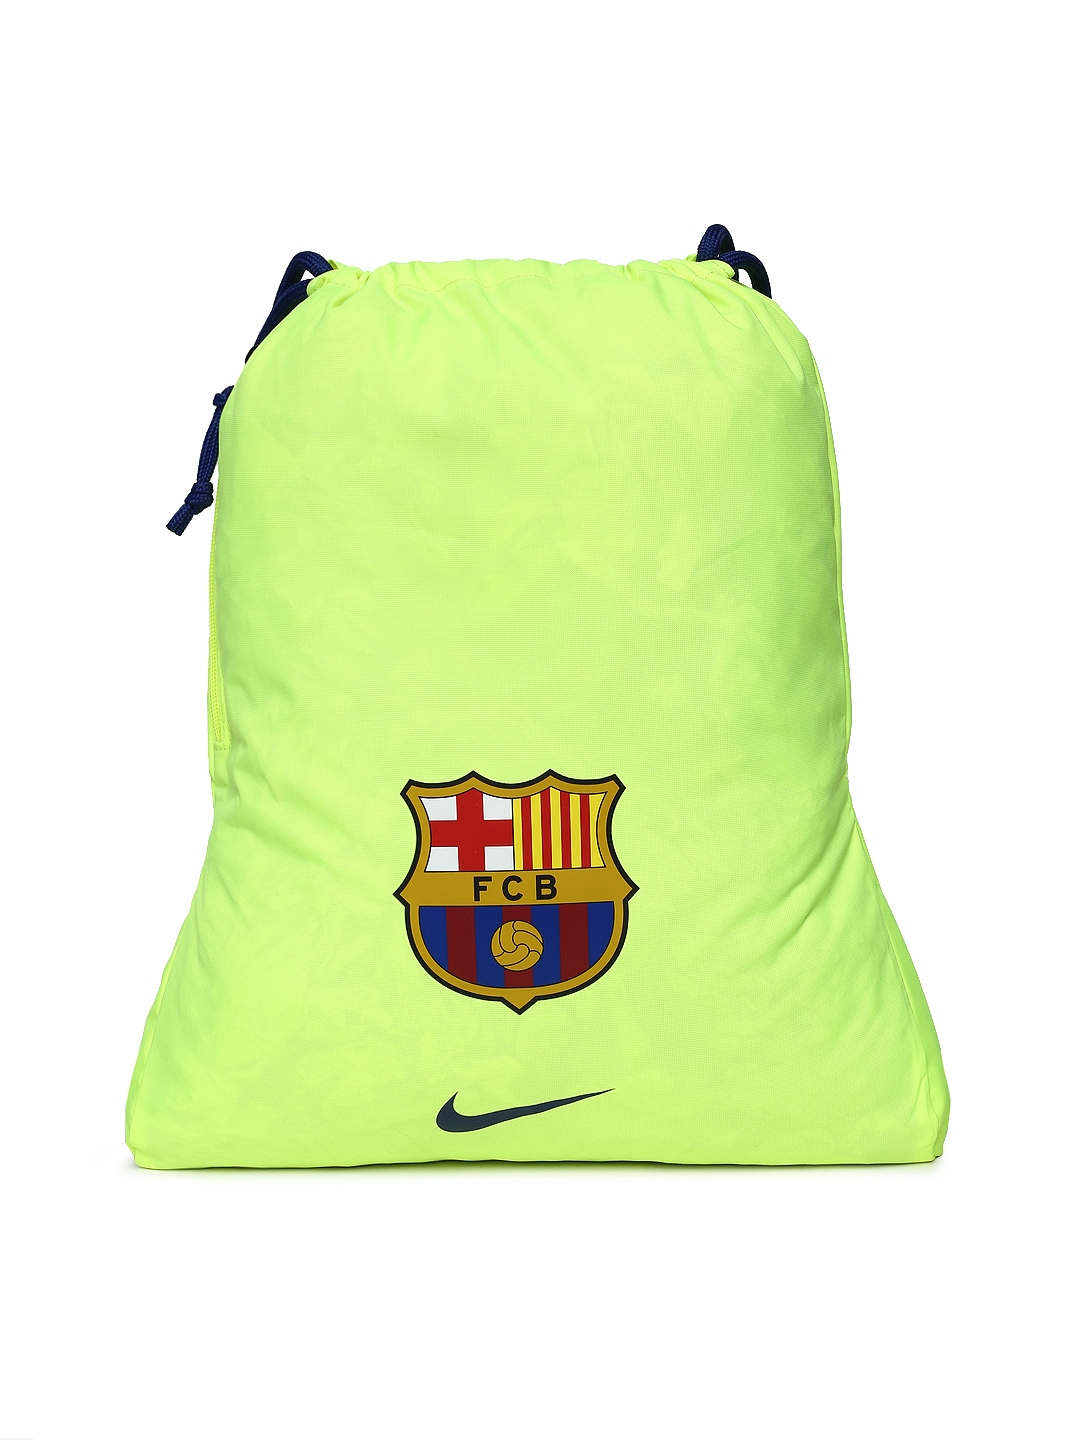 Nike Backpacks - Buy Original Nike Backpacks Online from Myntra 40b26f179ac80